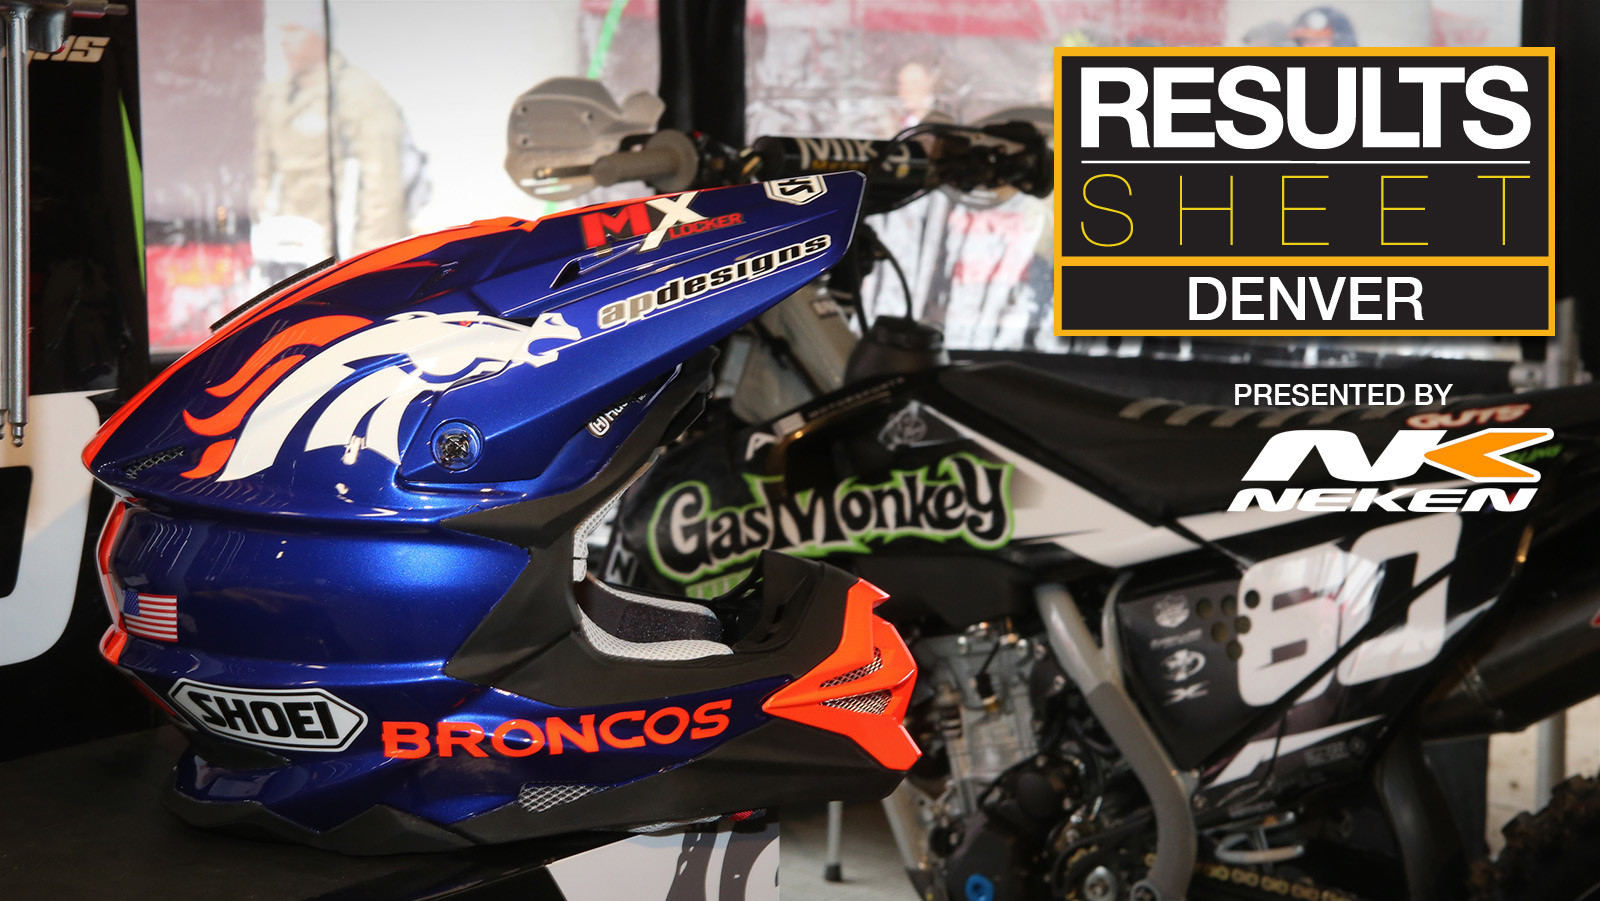 Results Sheet: 2019 Denver Supercross